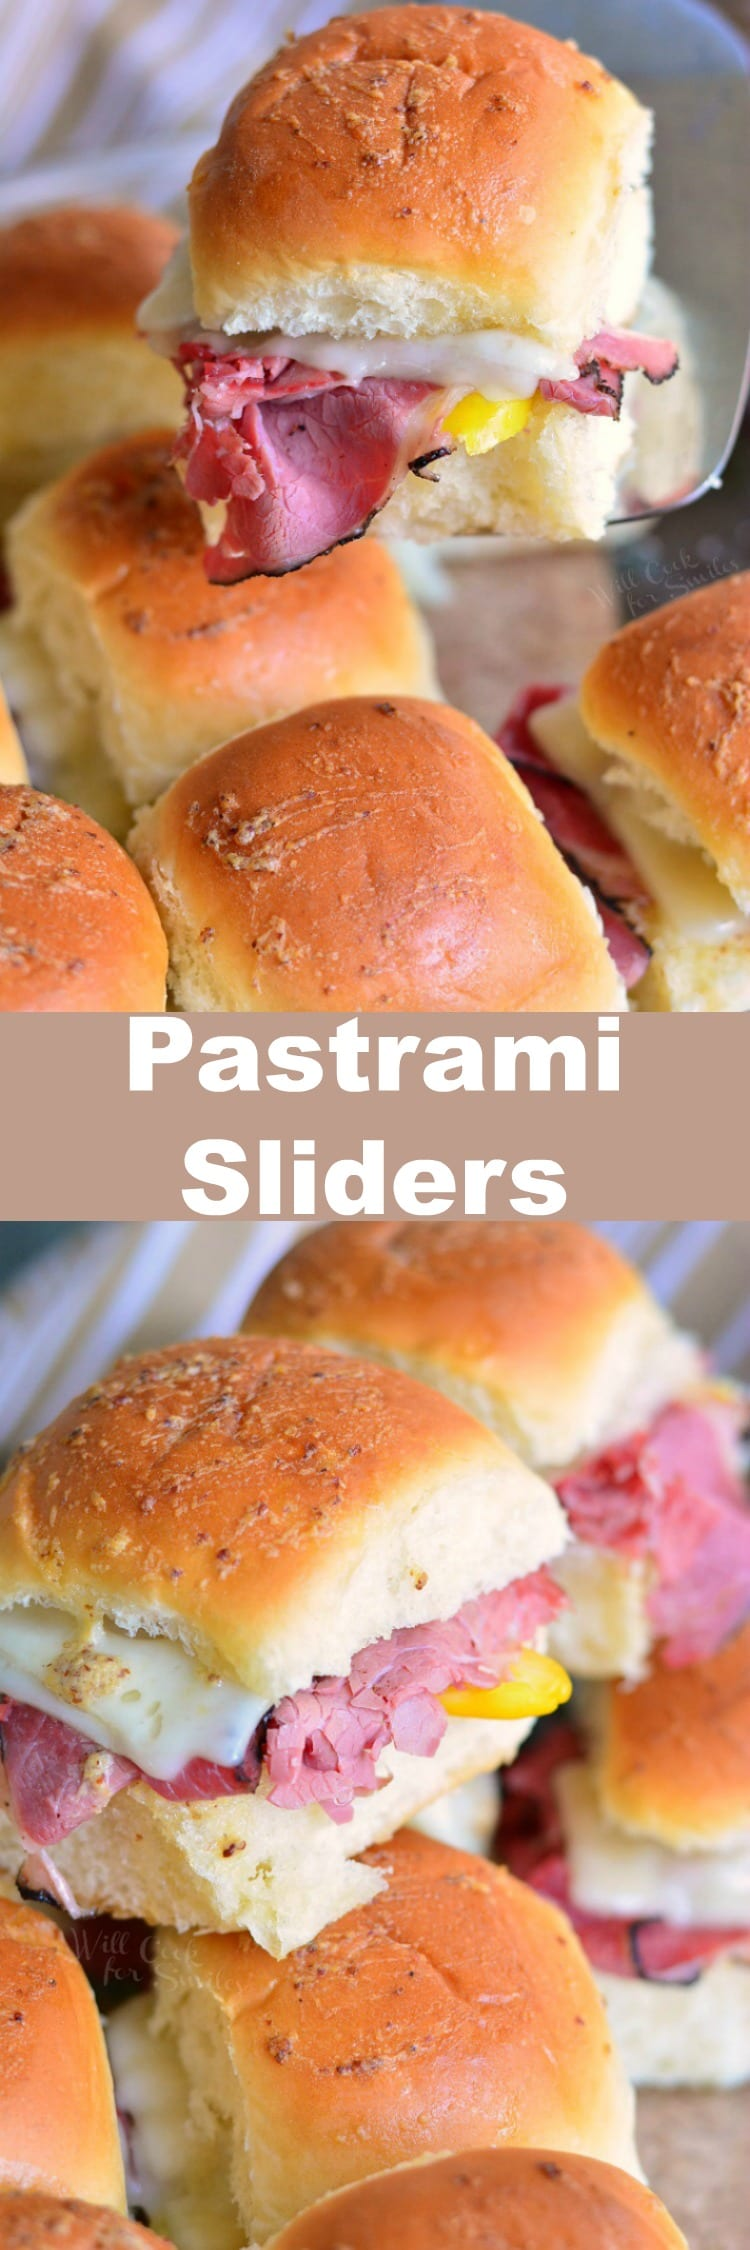 Hot Pastrami Sliders. These pastrami sliders are made with mouthwatering pastrami, gooey cheese, banana peppers, and buttery mustard sauce. #sliders #pastramisandwich